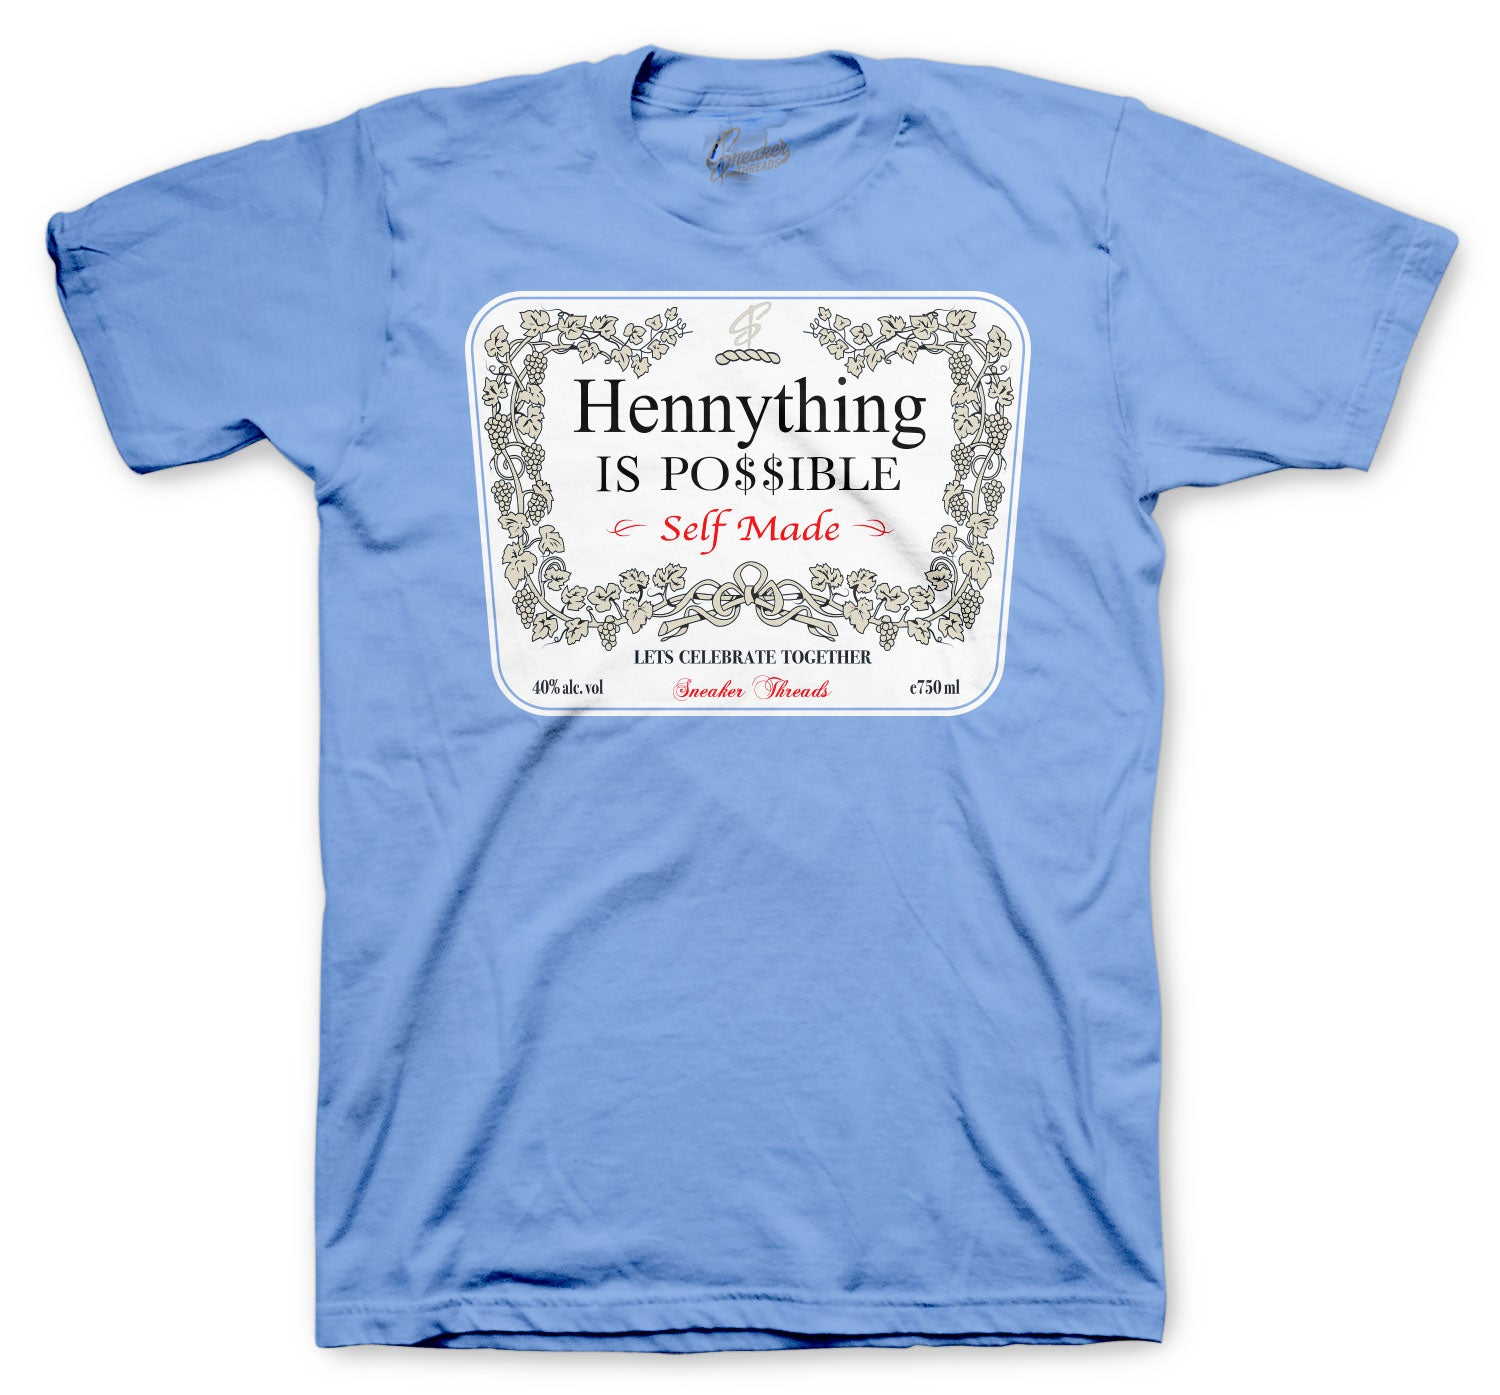 Jordan 3 UNC Shirt - Hennything - Light Blue